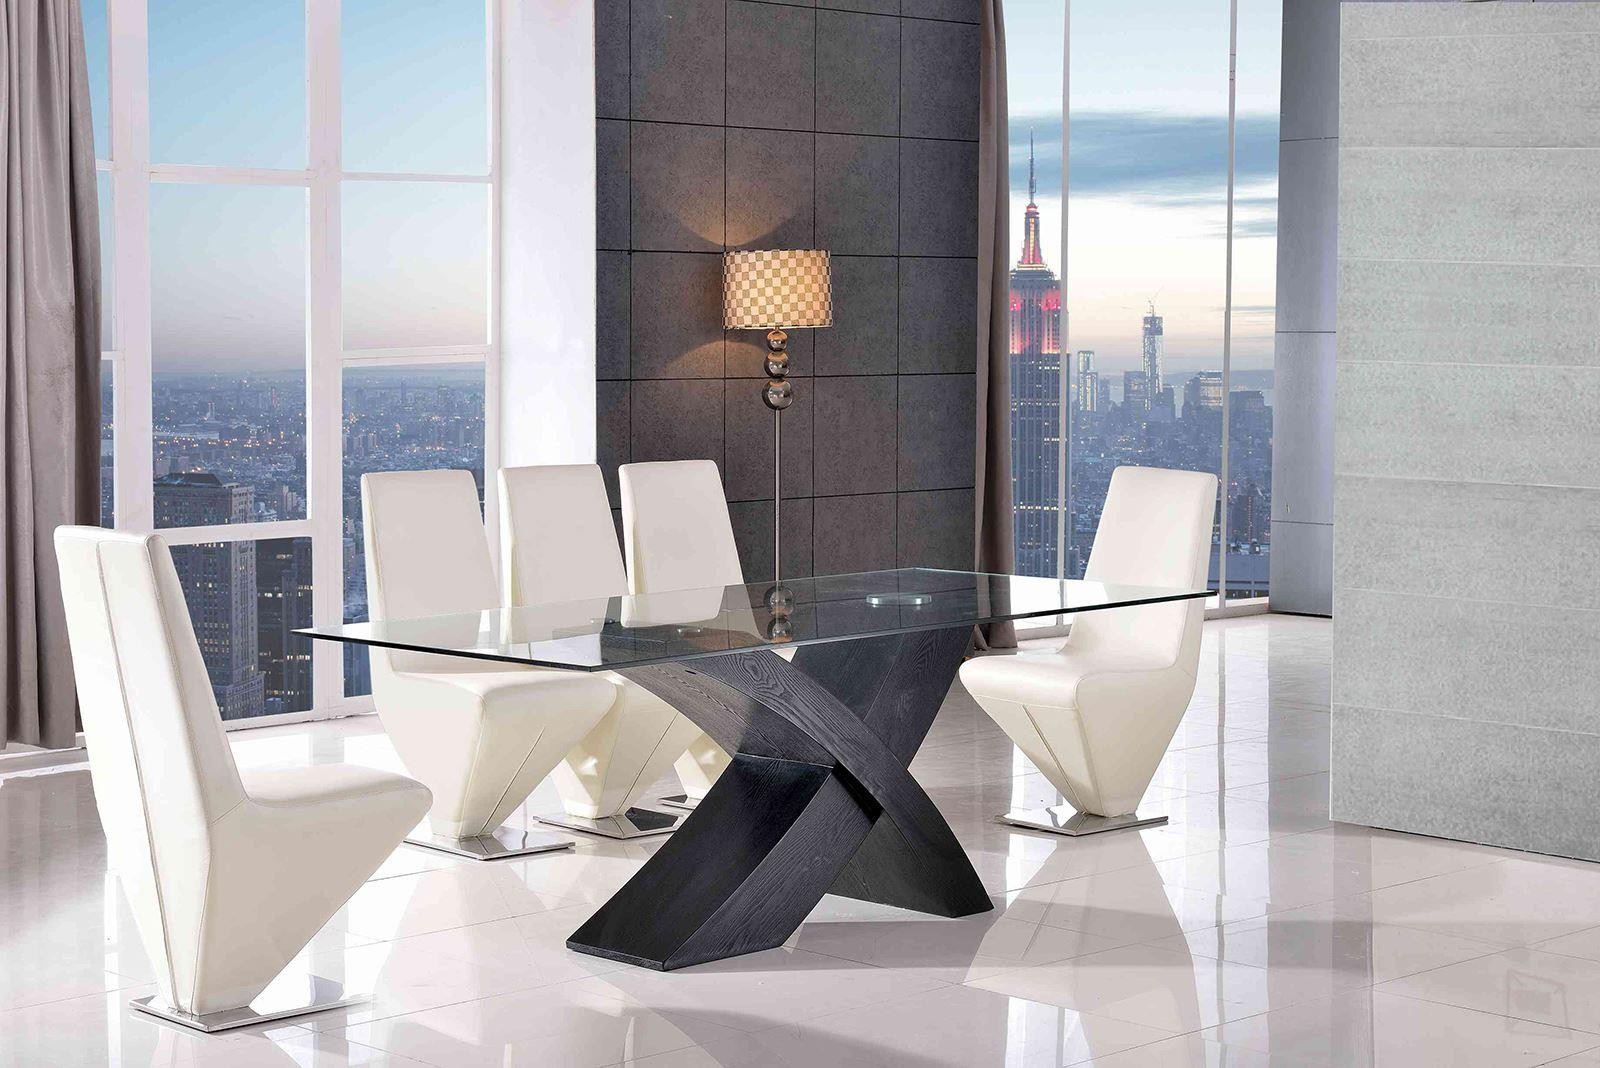 Valencia Black 200cm Wood and Glass Dining Table with 6 Rita Designer Dining Chairs [Ivory]